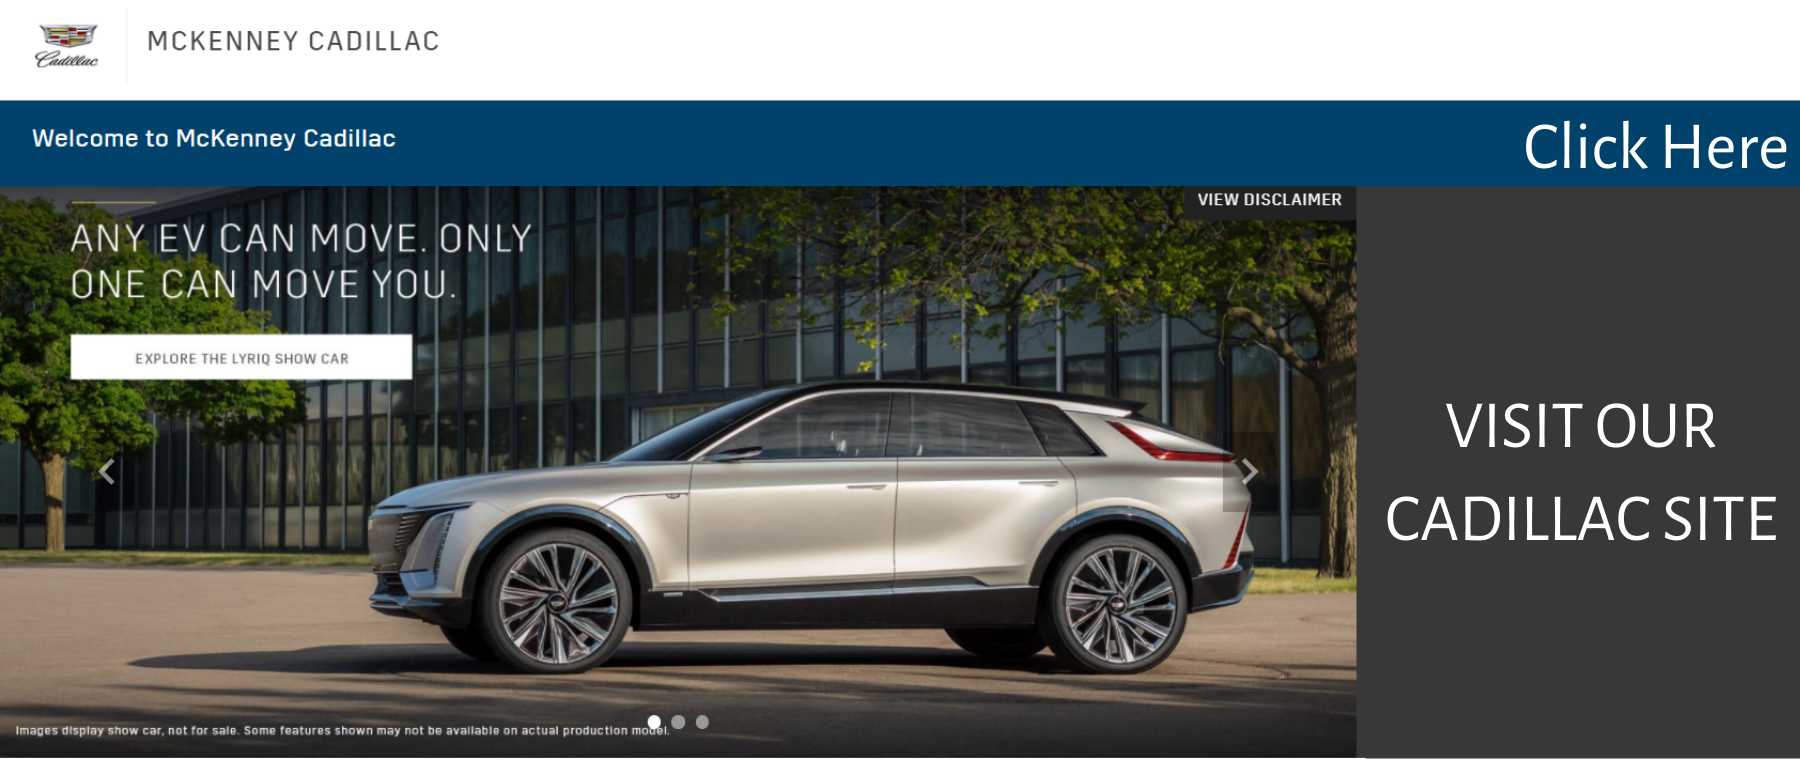 VISIT OUR CADILLAC SITE